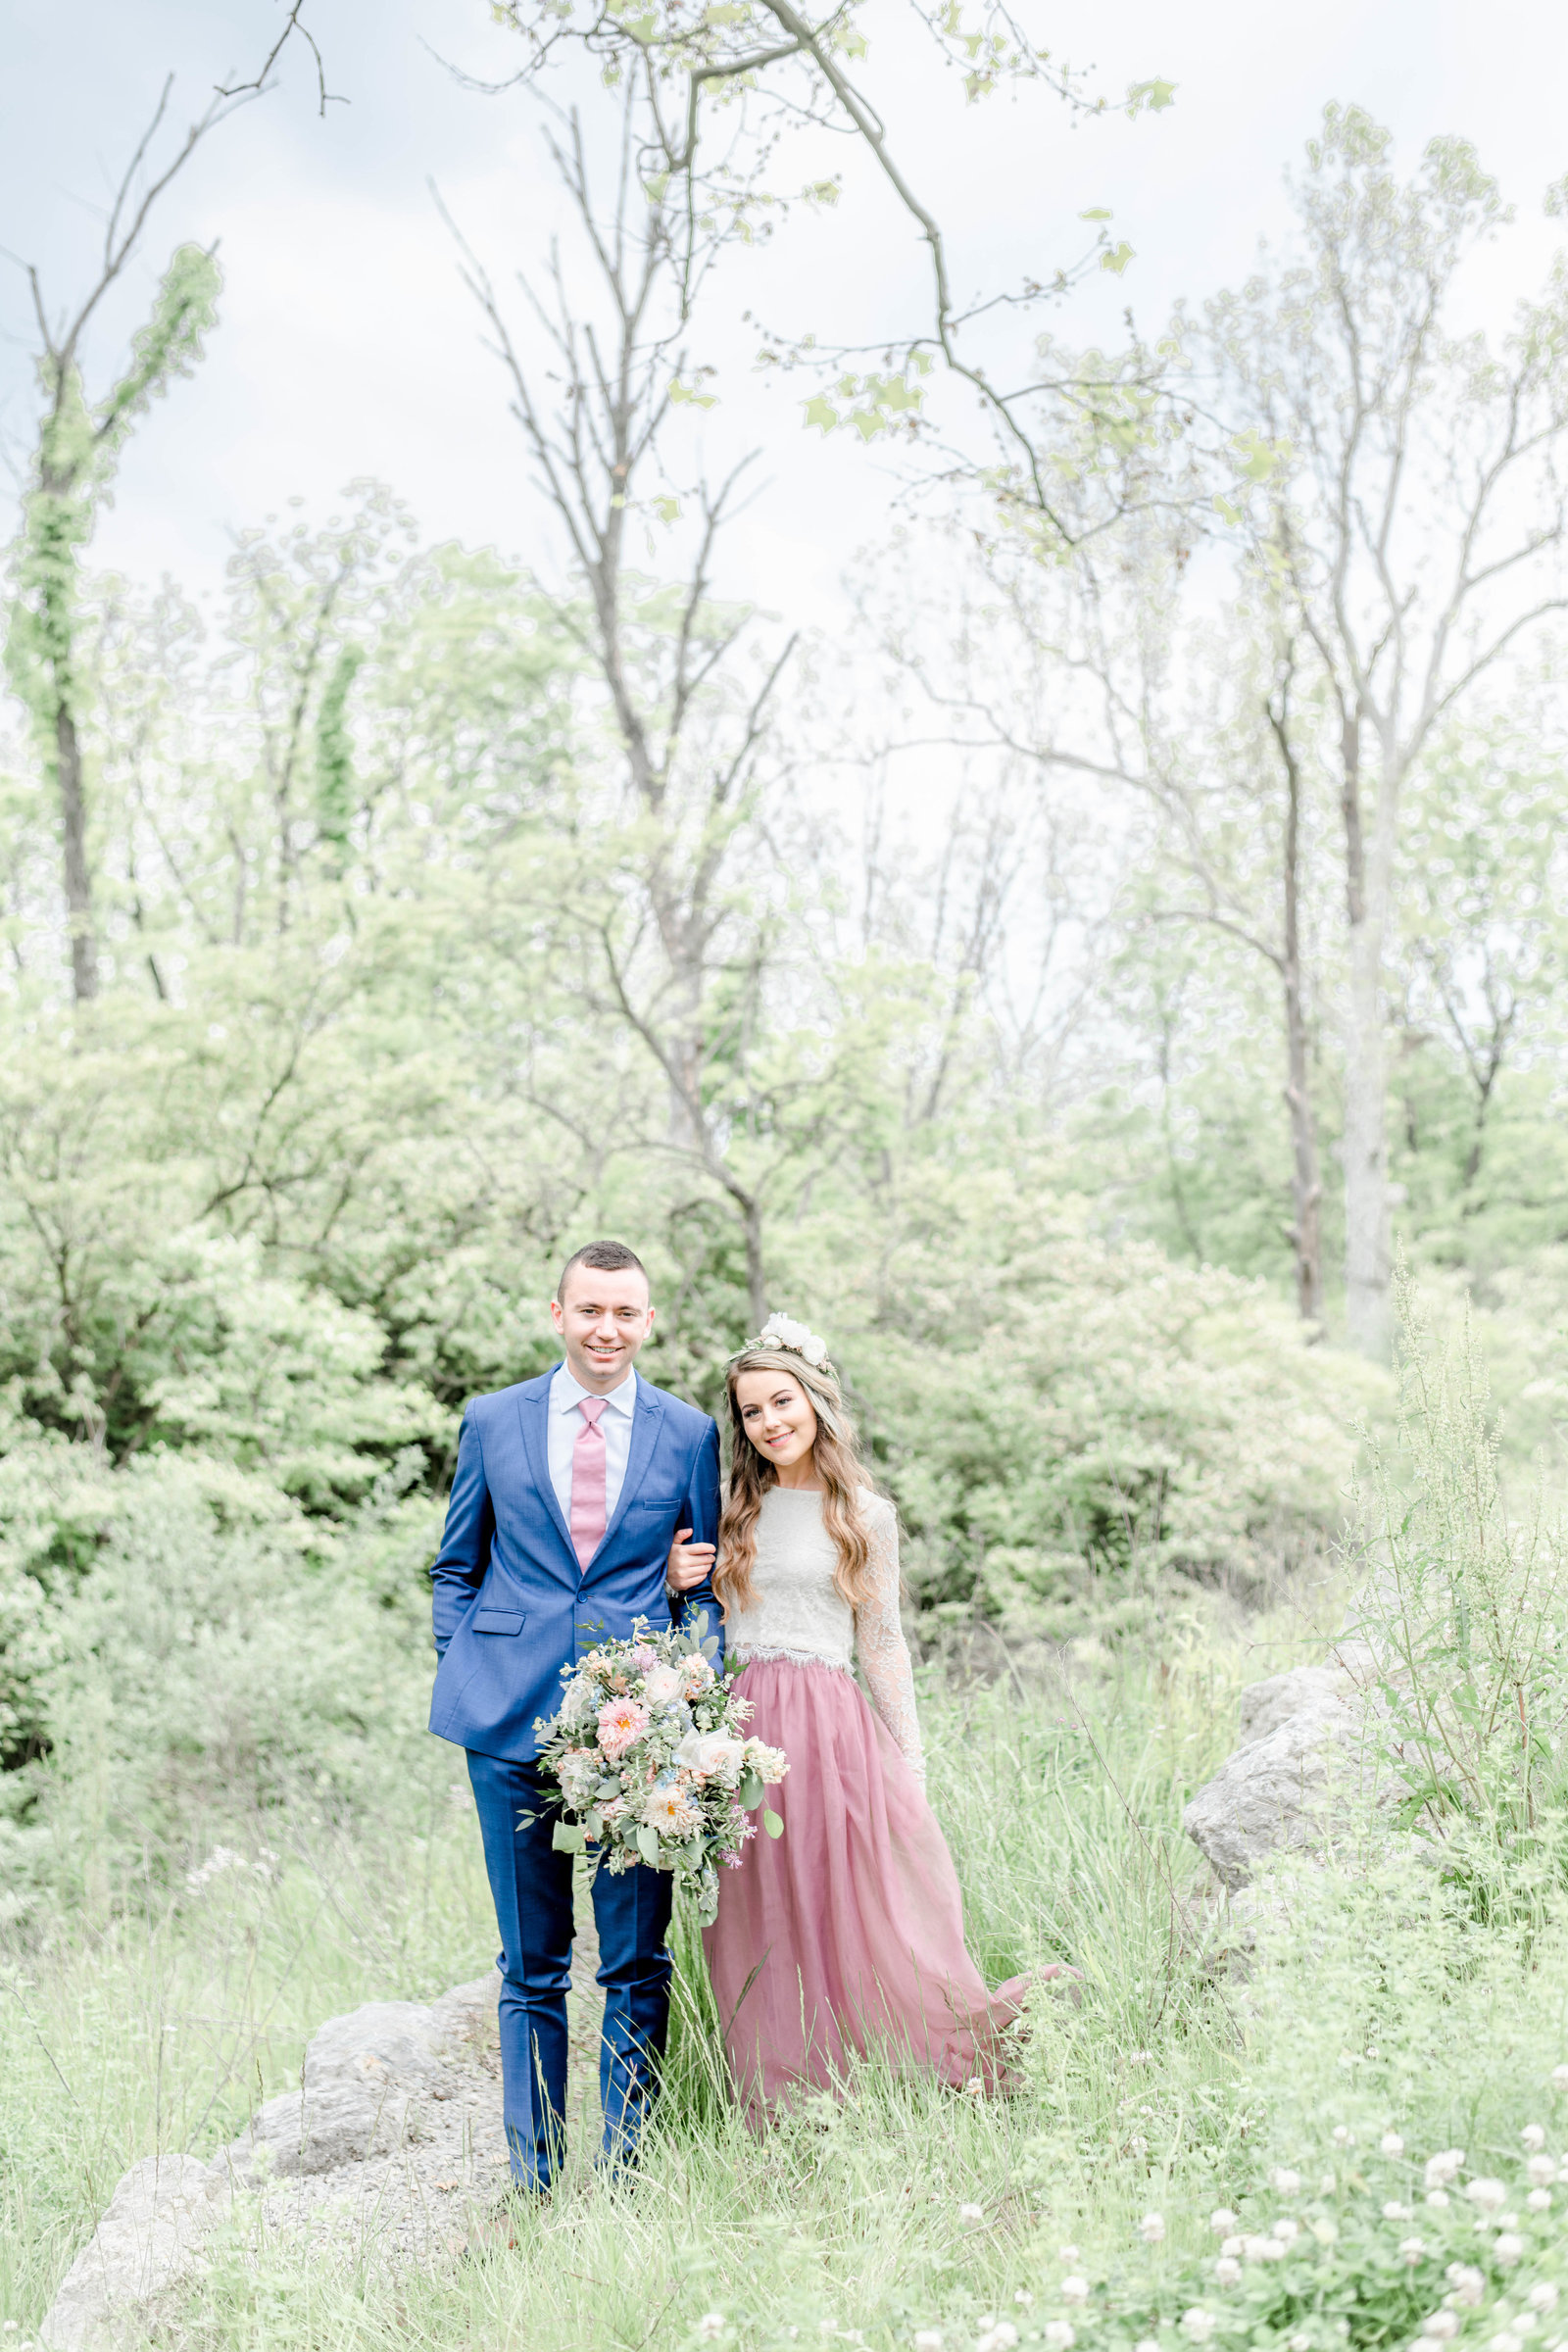 Cassidy Alane Photography-Rosewood Manor - Dayton Ohio - Wedding-Engagement Photography62